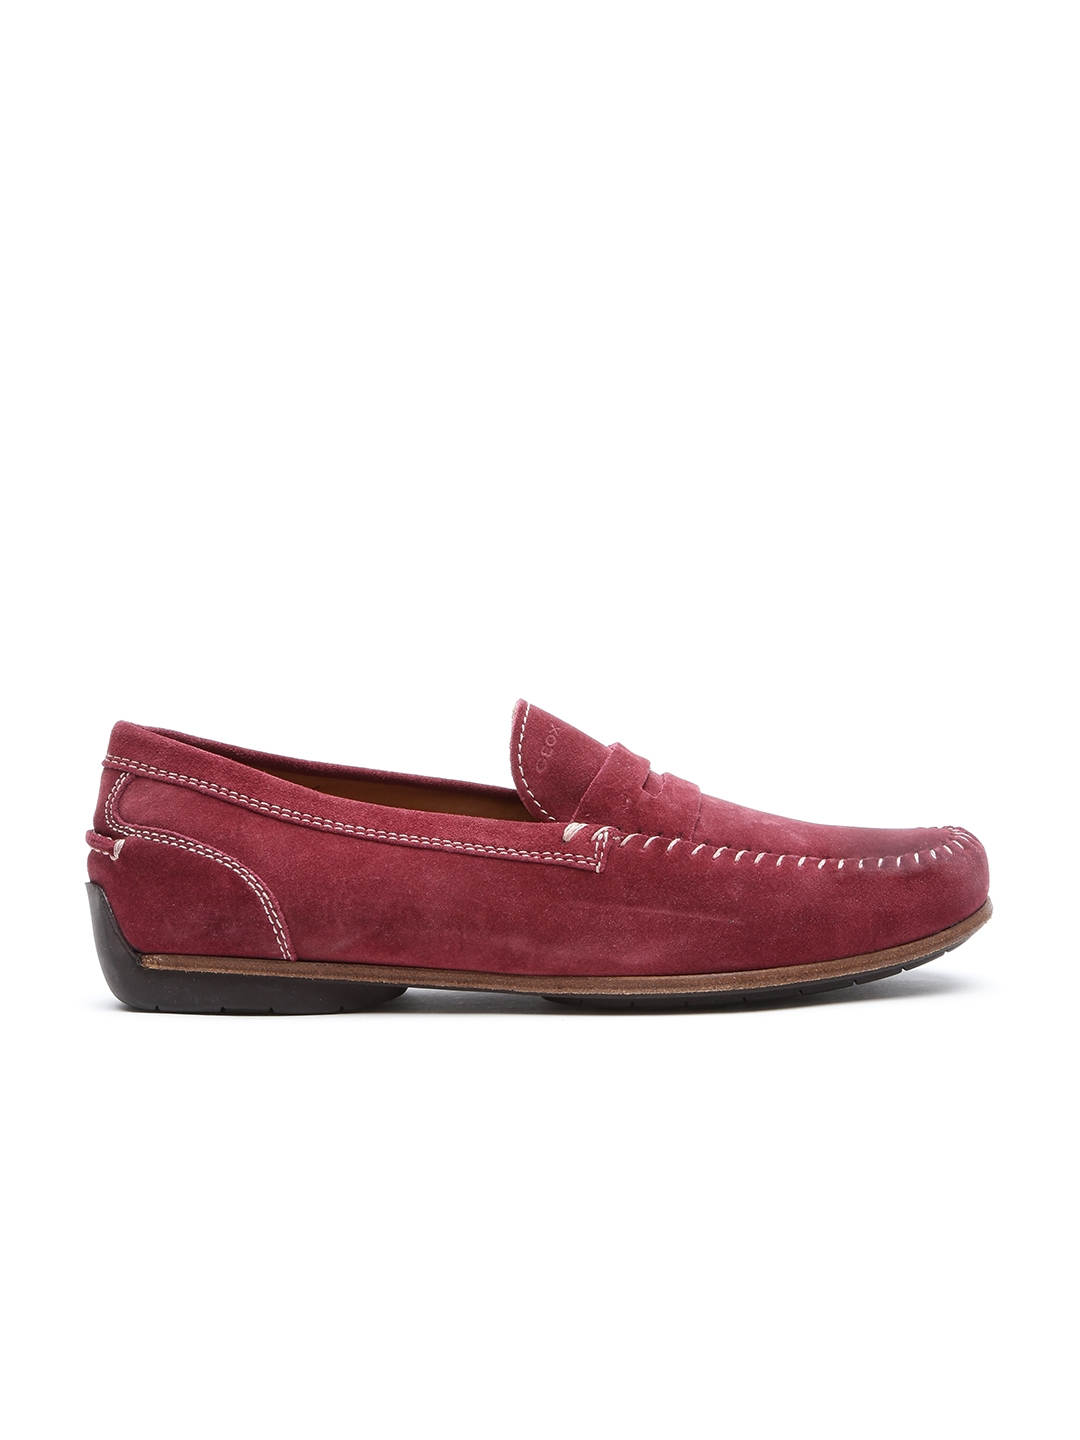 3c3b282867c13 Buy GEOX Breathes Men Burgundy Breathable Italian Patent Leather Loafers -  Casual Shoes for Men 1412512 | Myntra